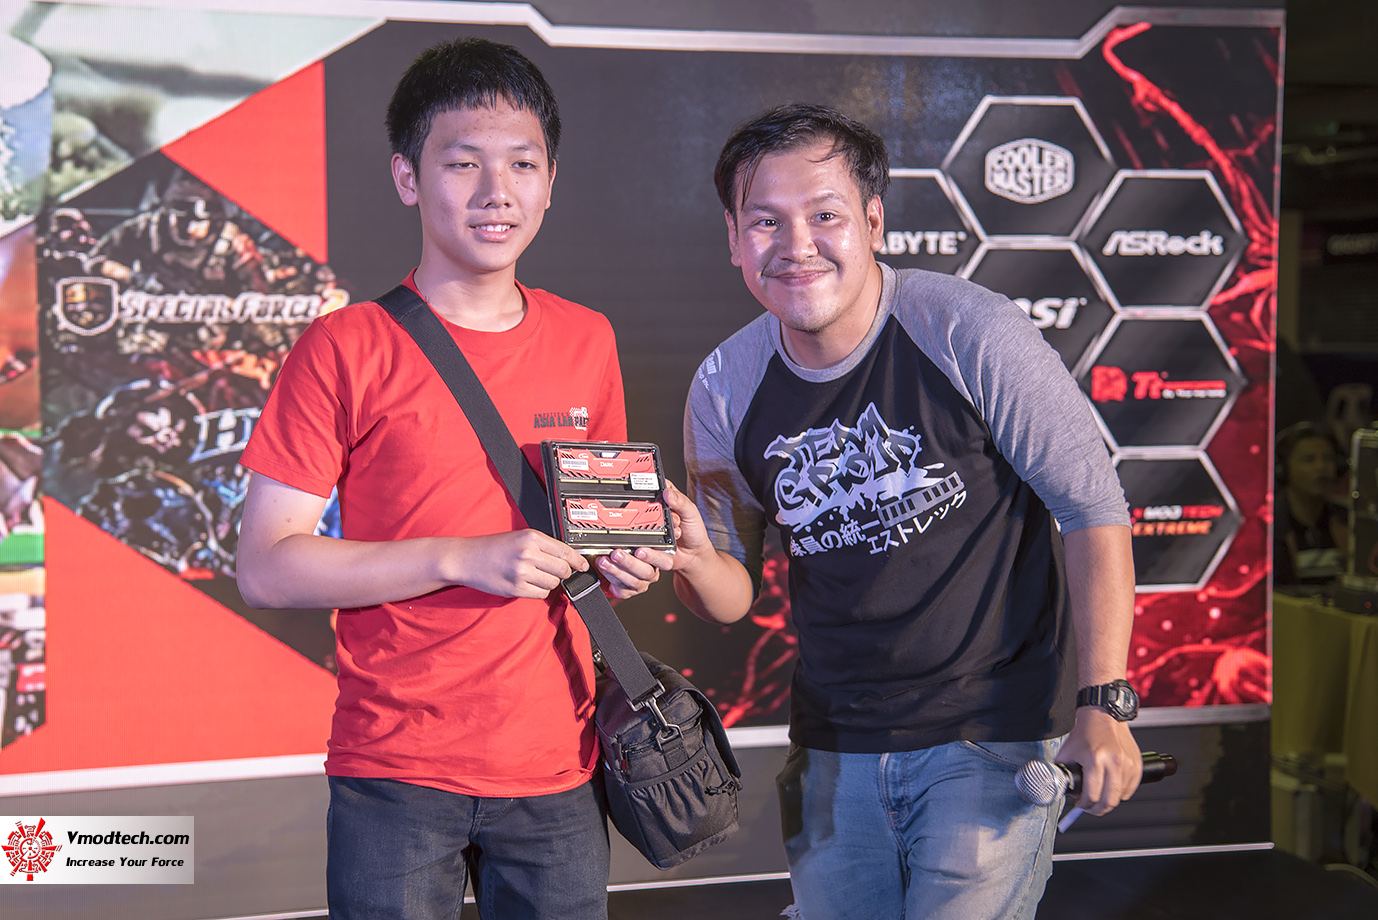 dsc 3229 AMD OMG! Party 2015 (AMD Overclock Modding Gaming Party 2015)